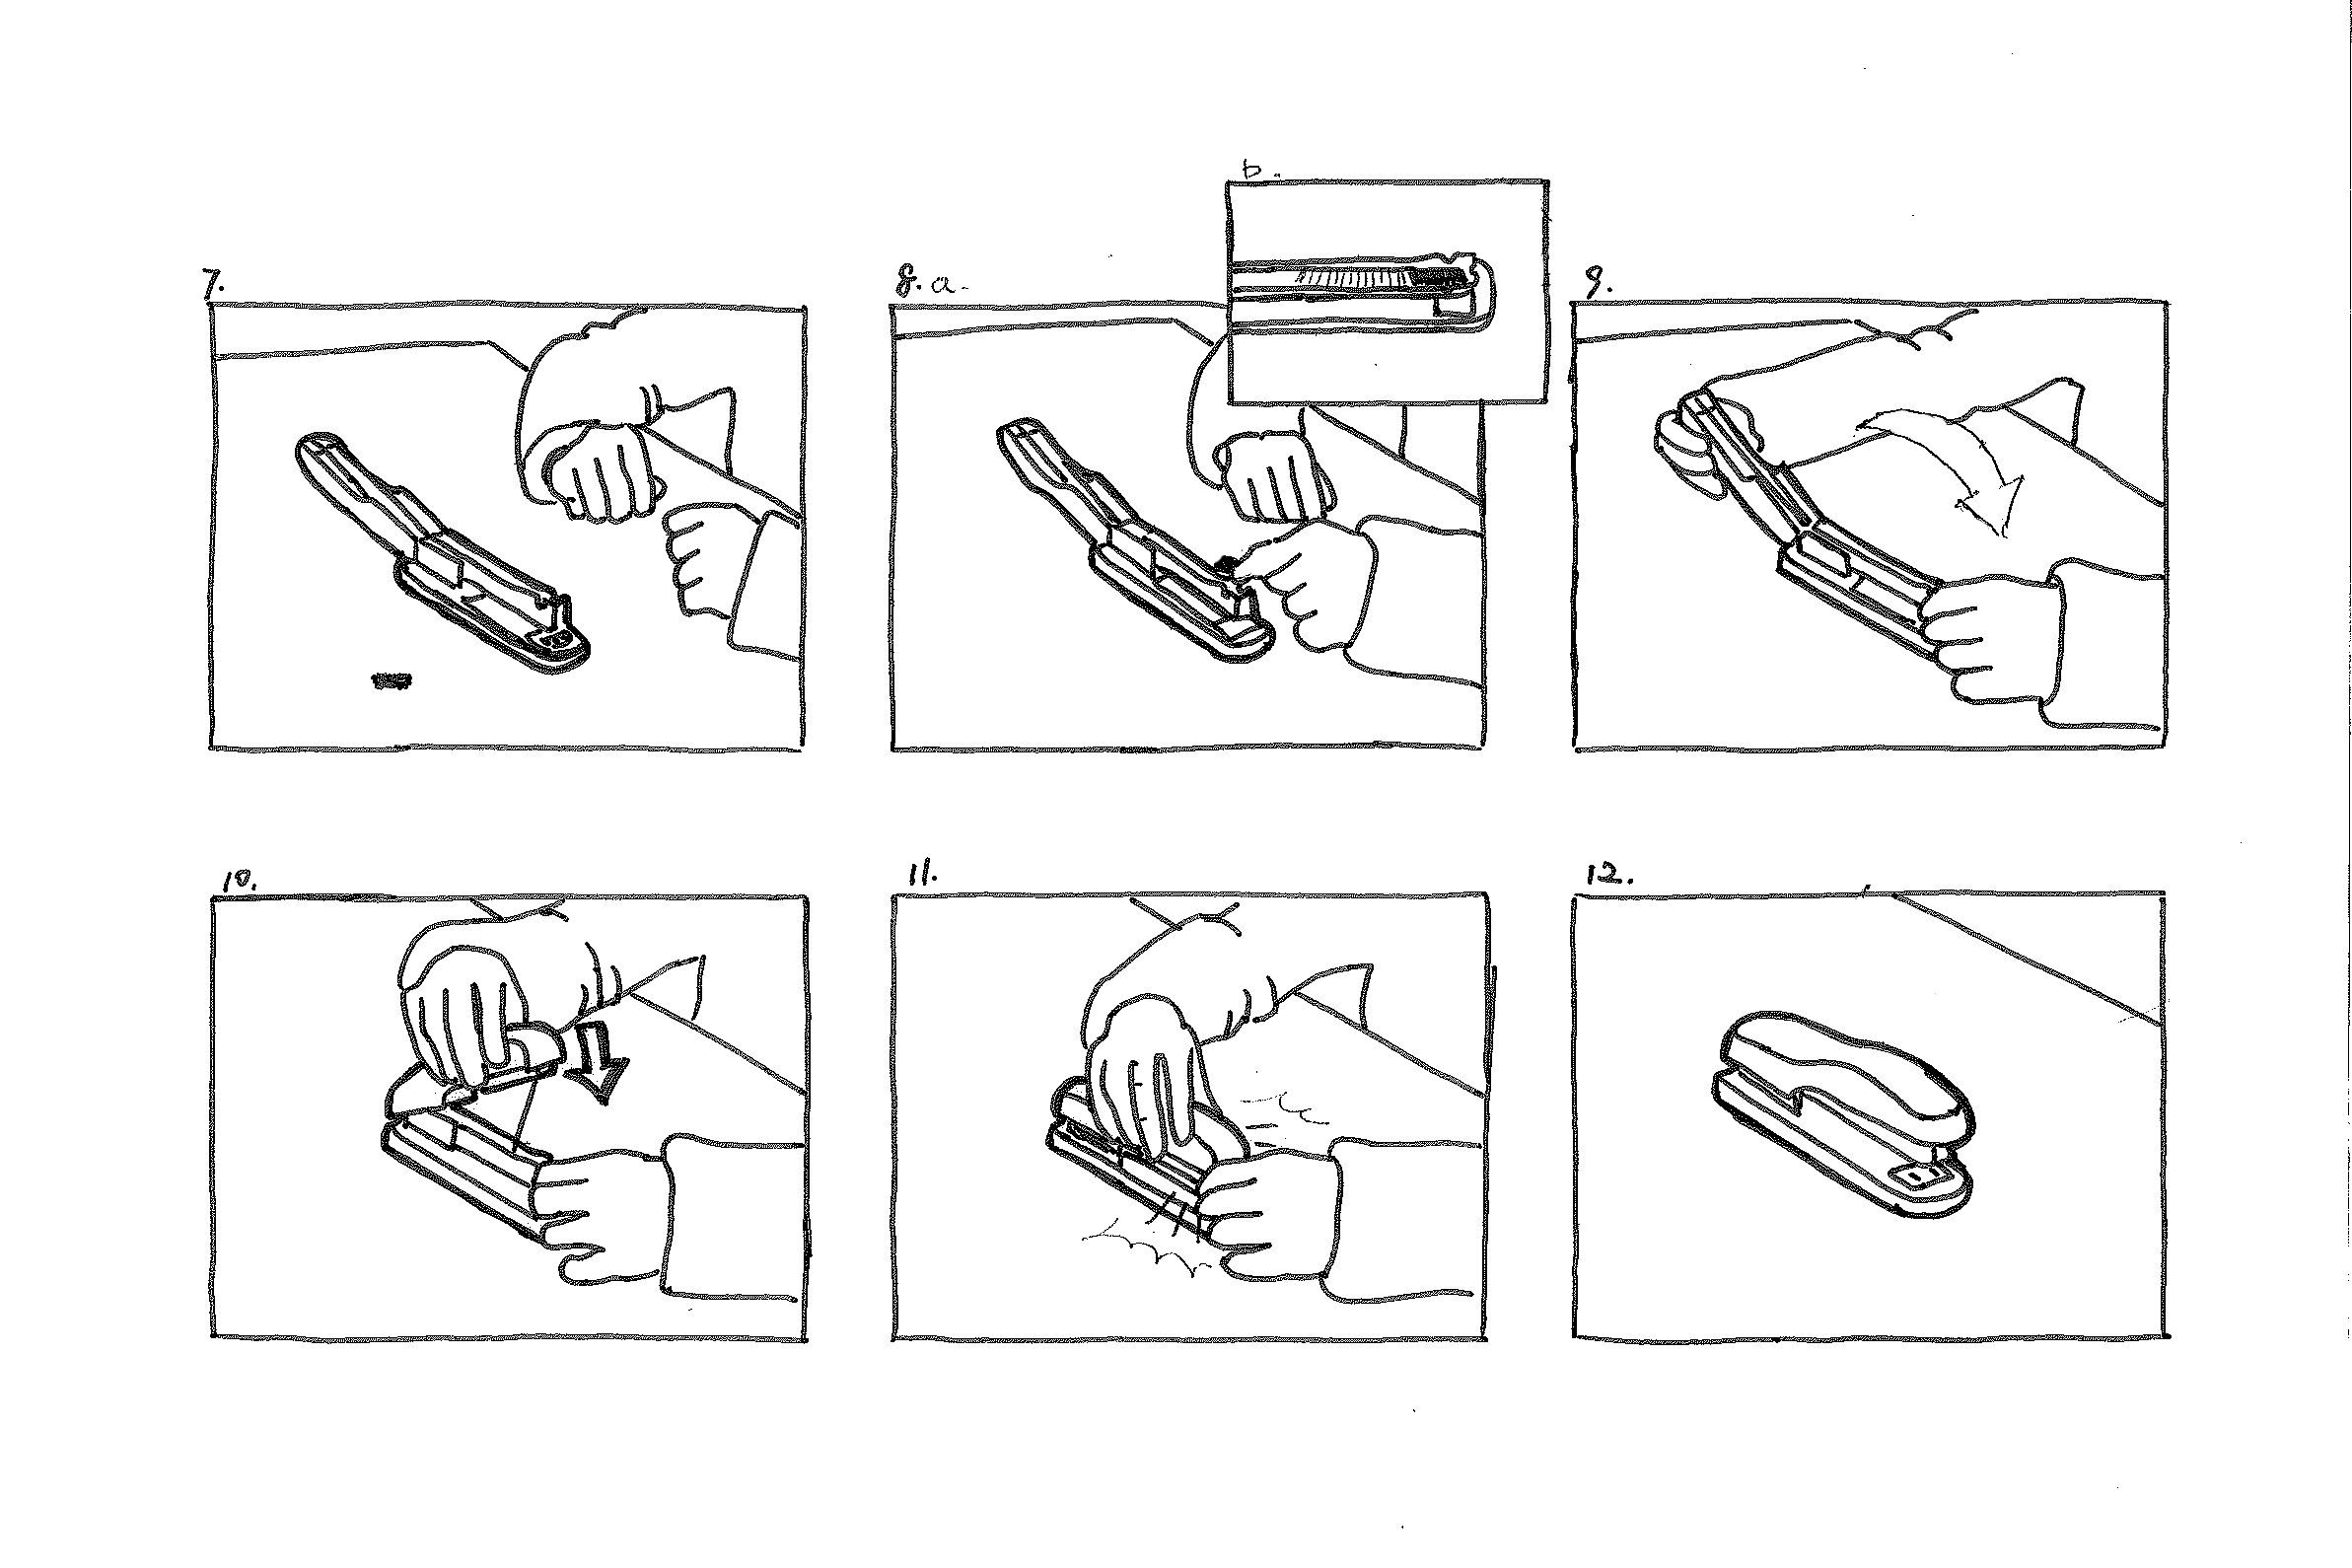 Storyboard: how to refill a stapler 2